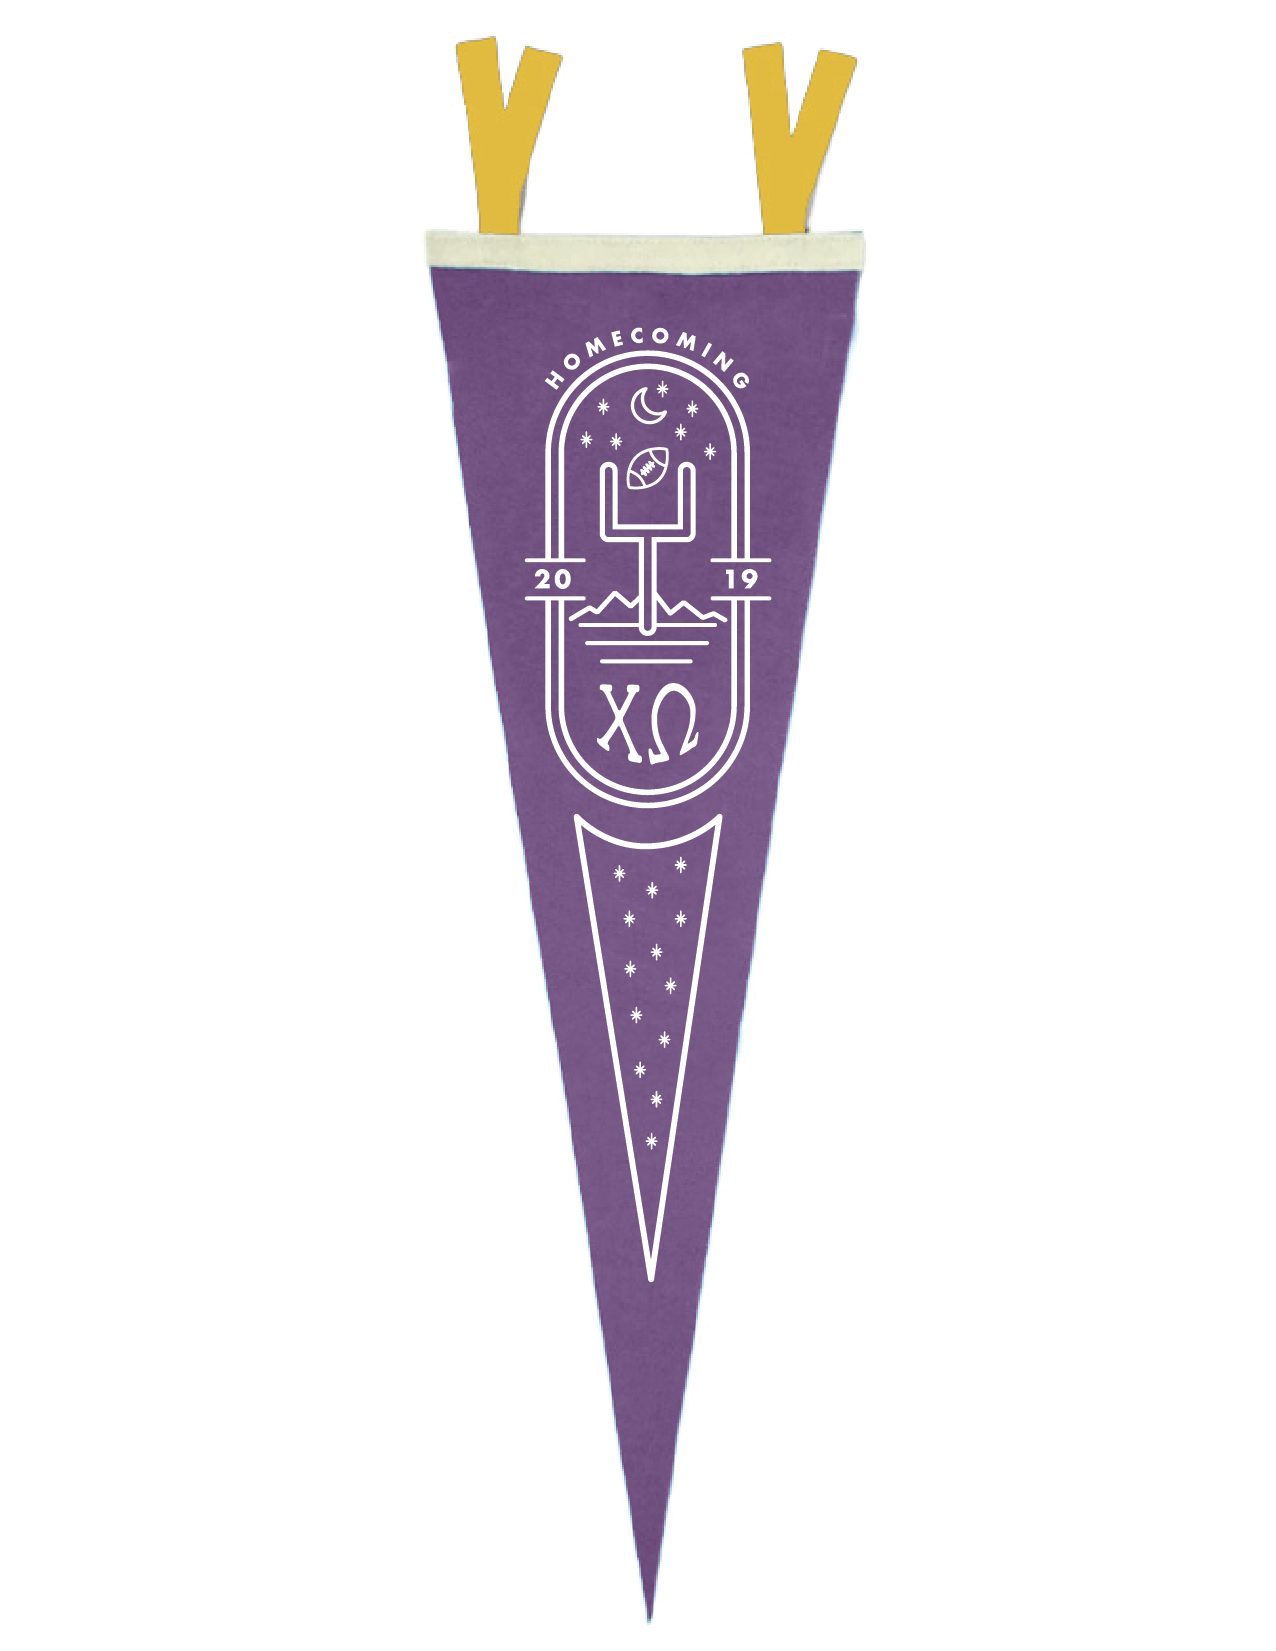 Oxford_Pennant_Event_Designs-06.png